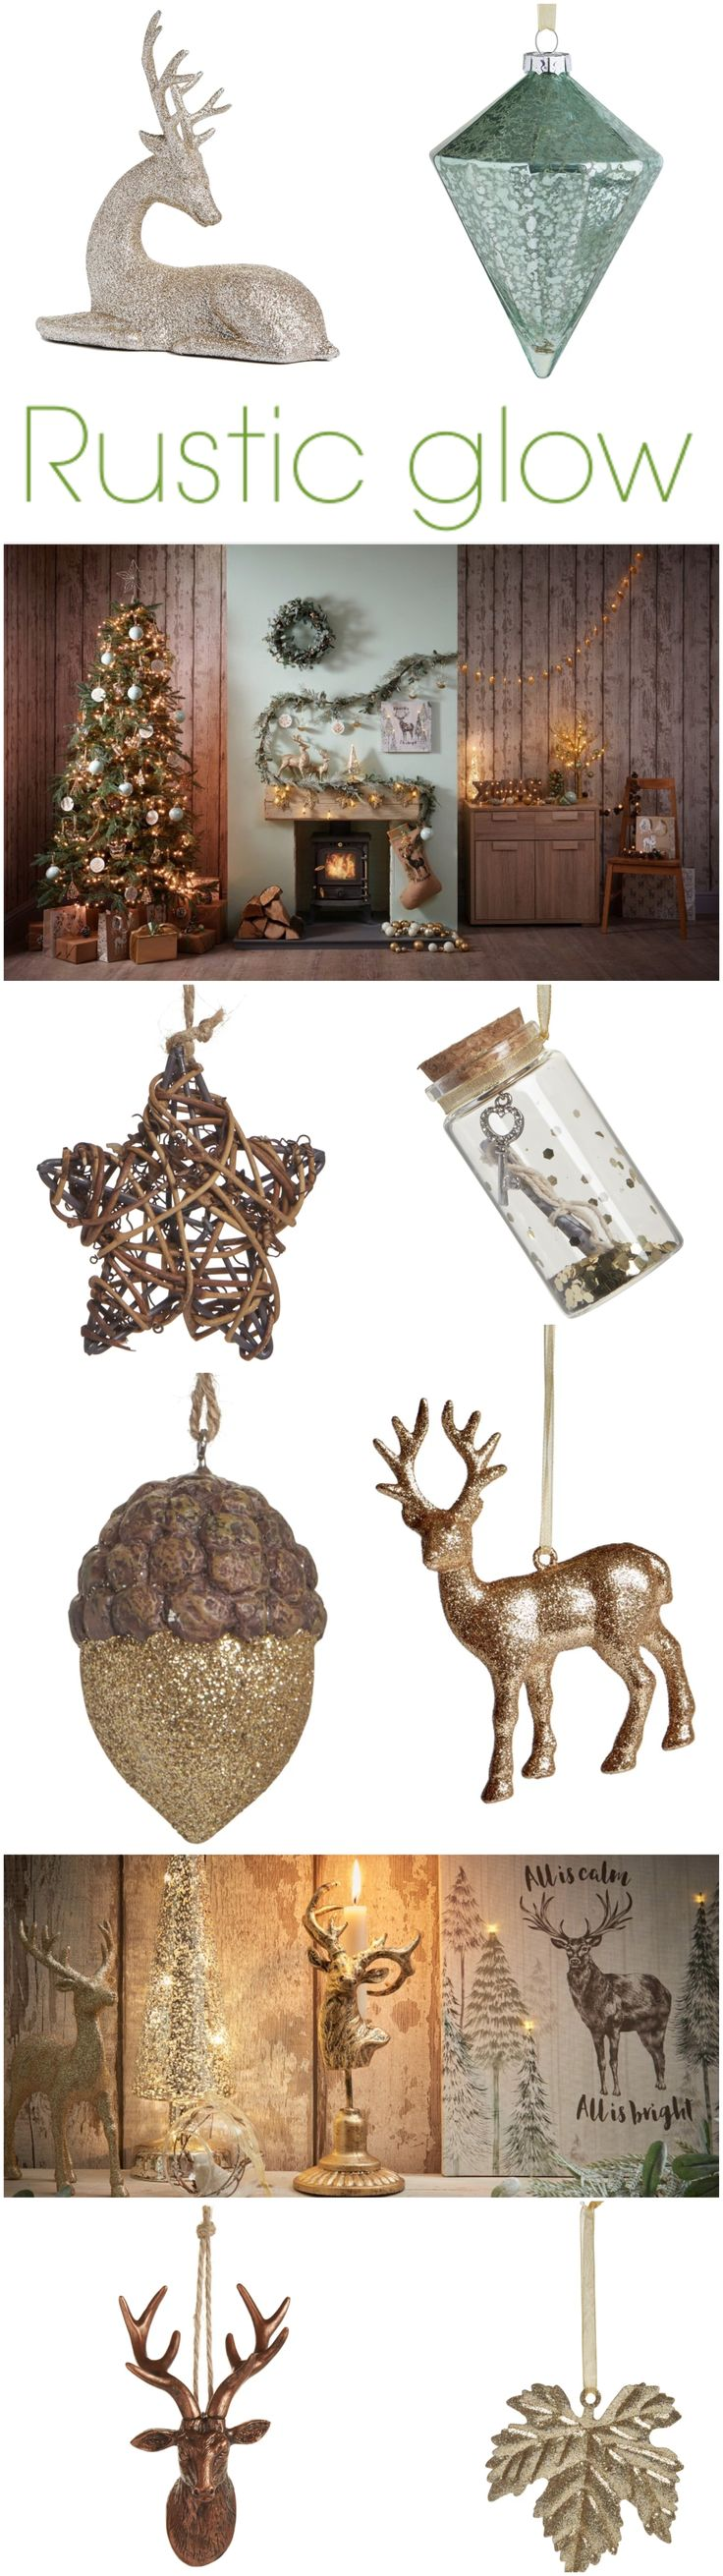 40 best Wilko | Rustic Glow images on Pinterest | Battery operated ...